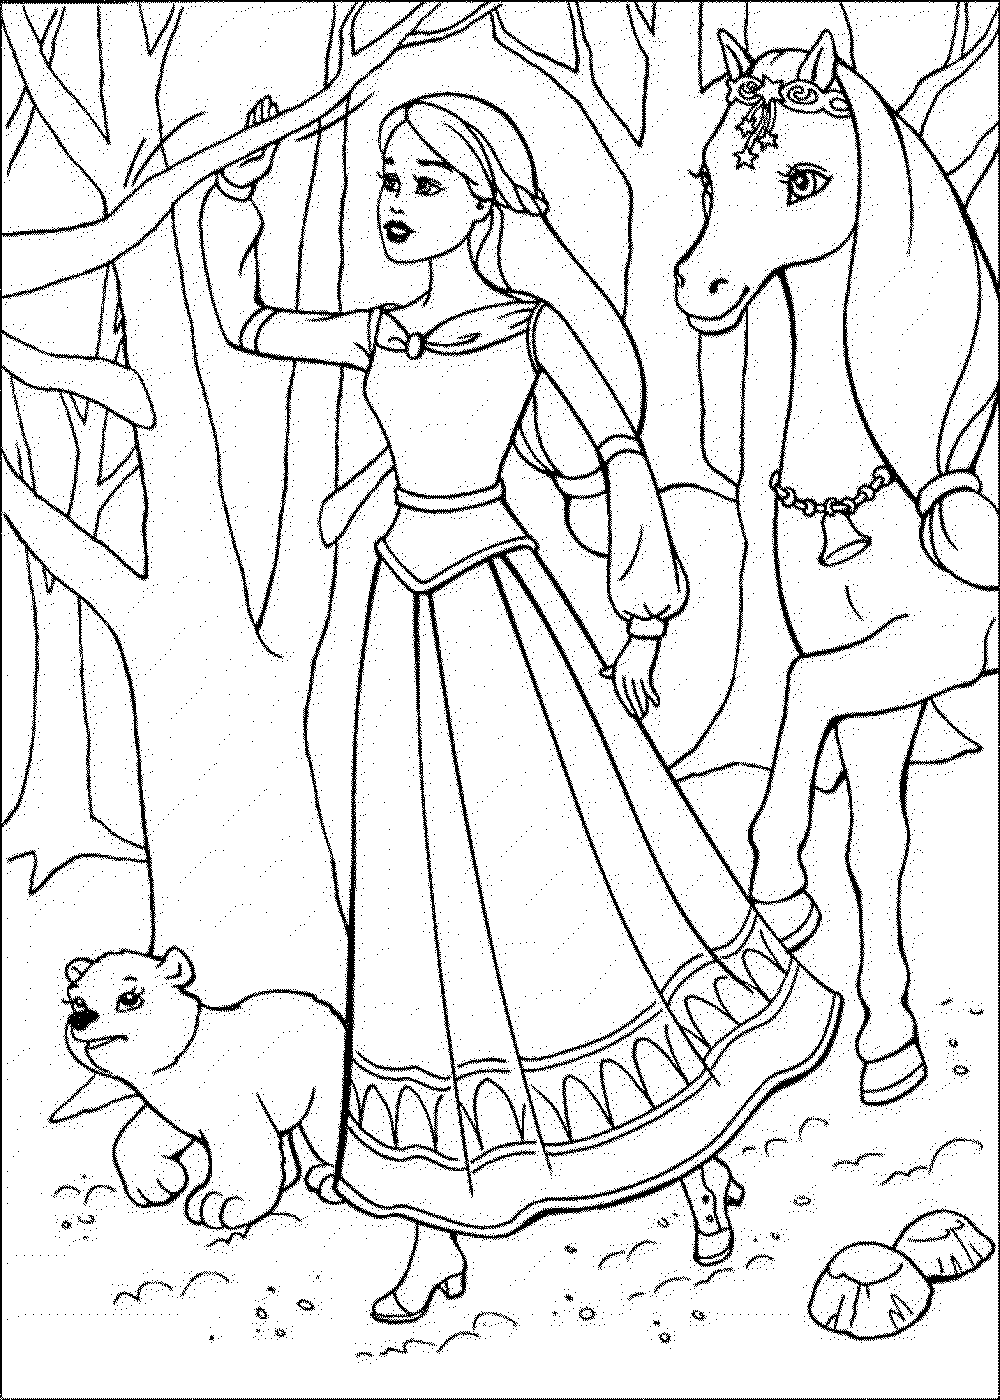 Barbie Coloring Pages App : Coloring page barbie bestappsforkids